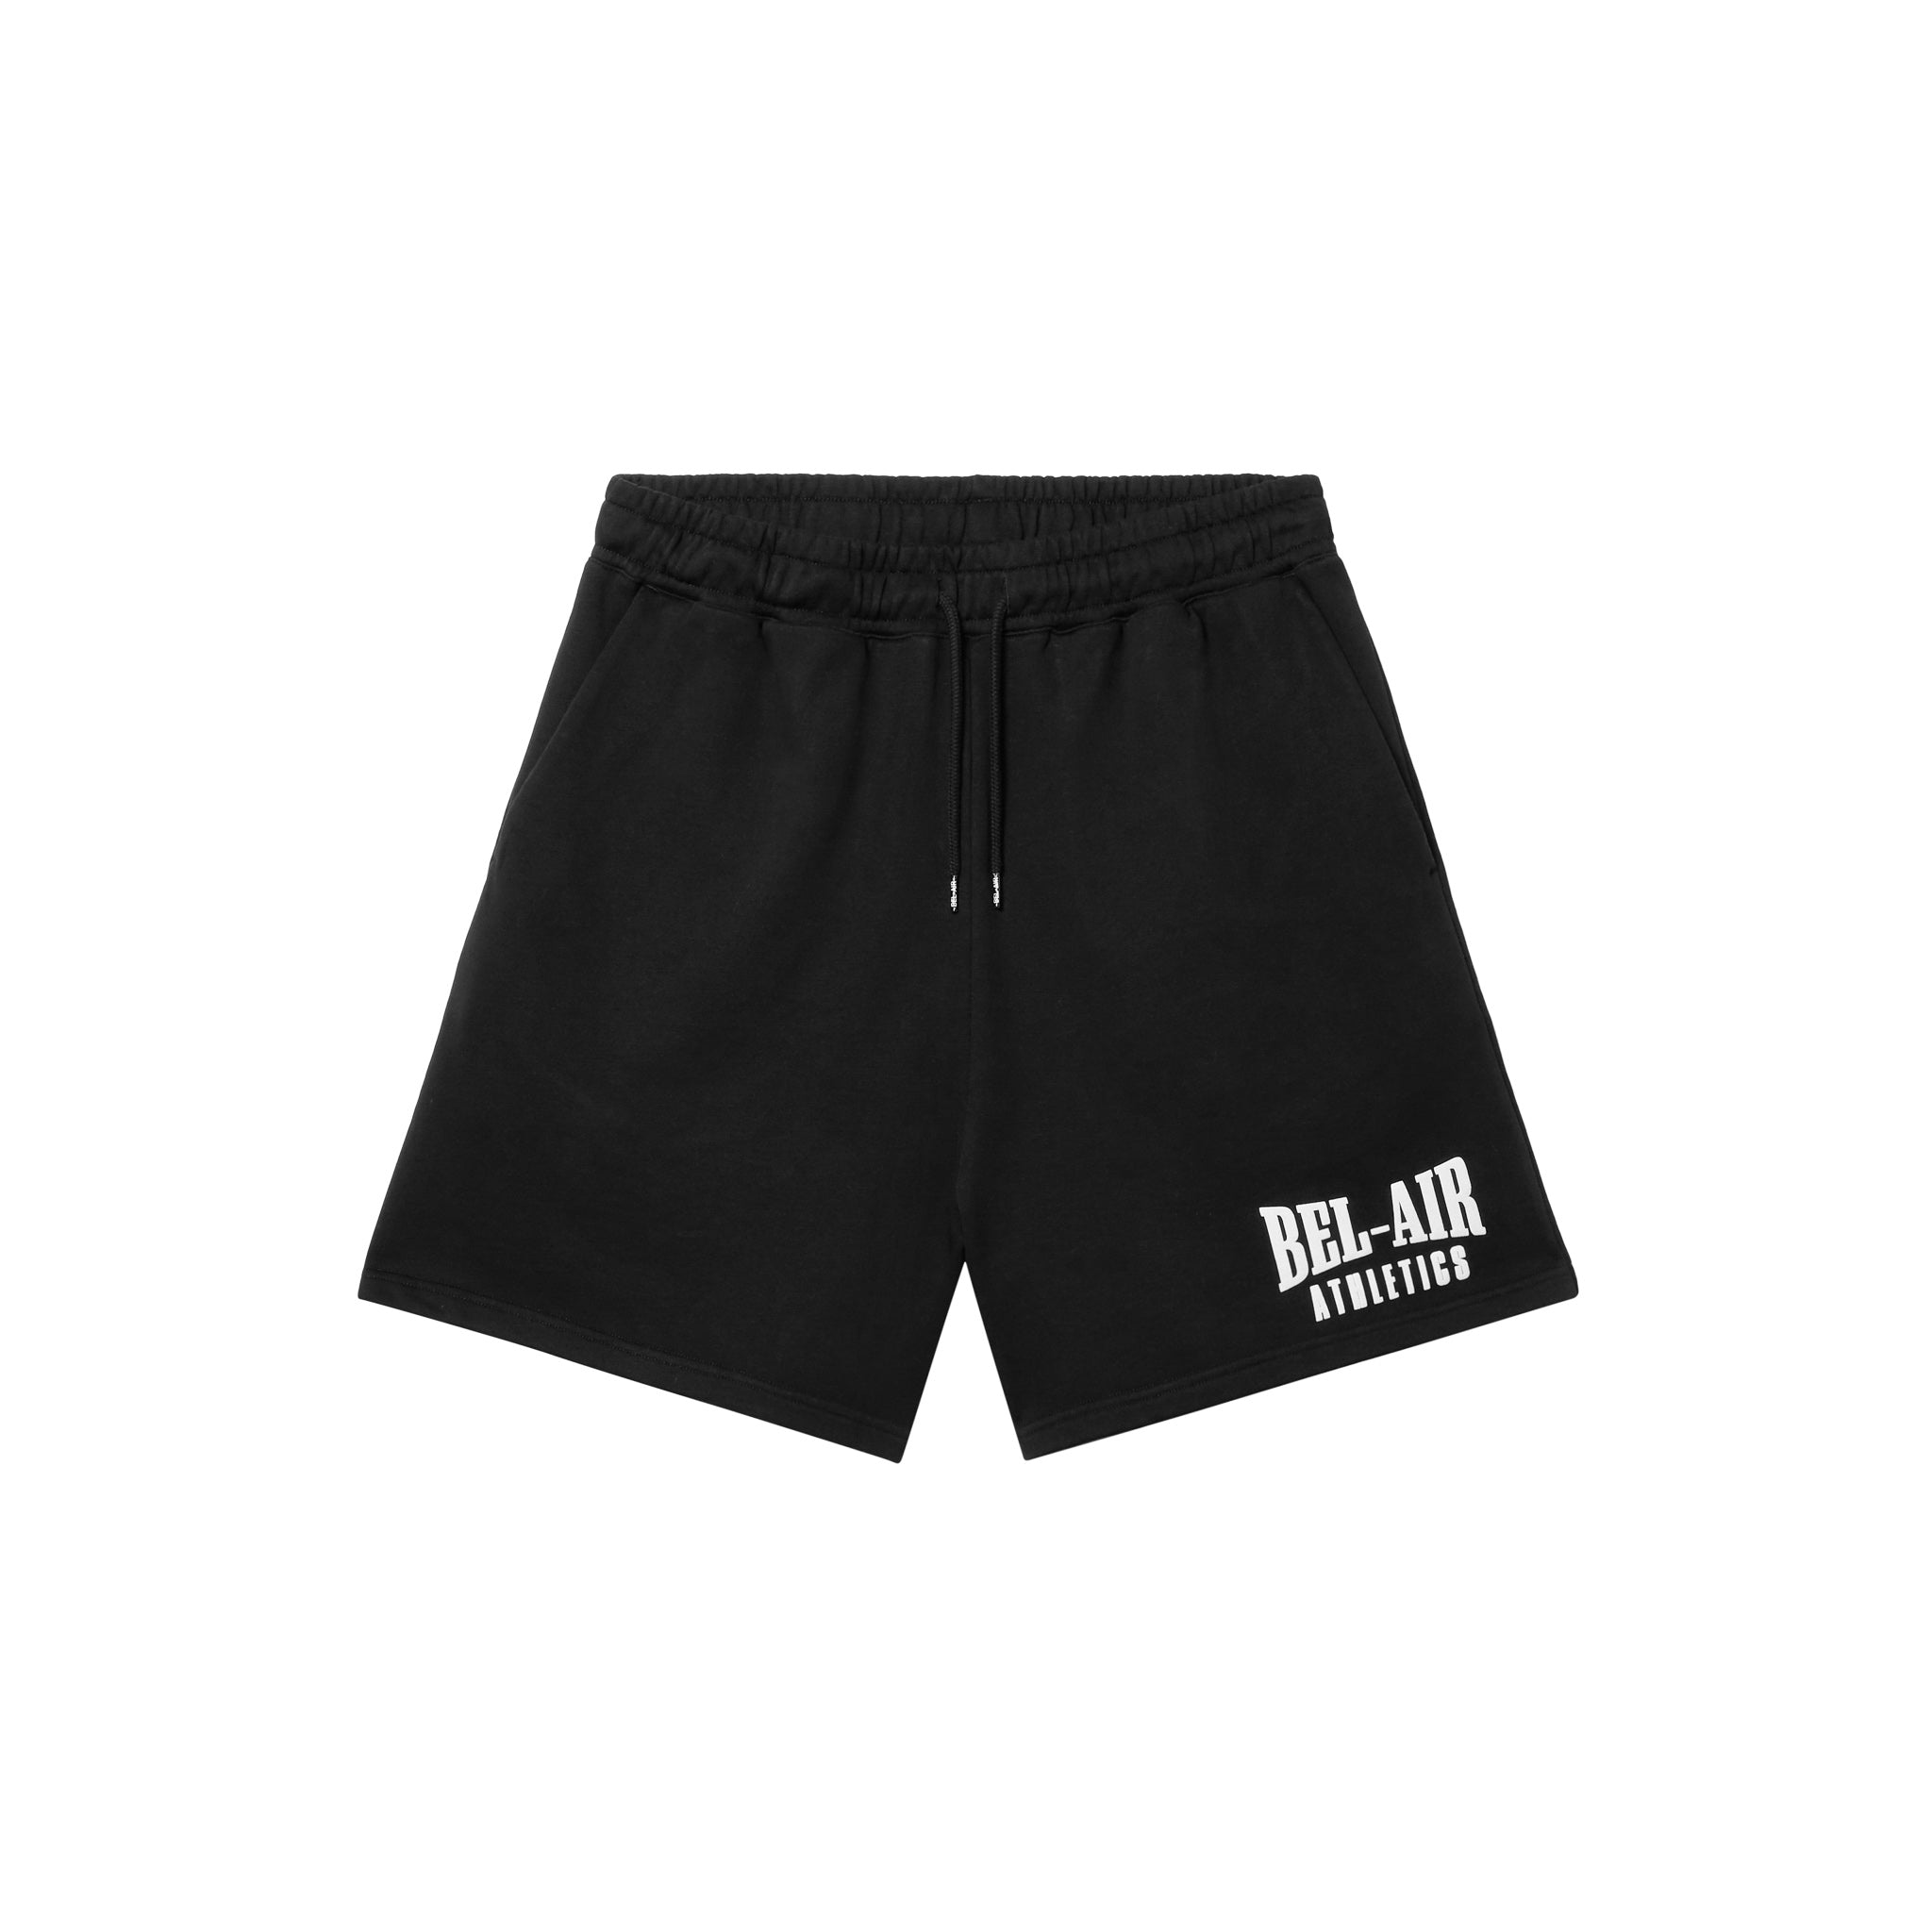 Puff logo short - VINTAGE BLACK